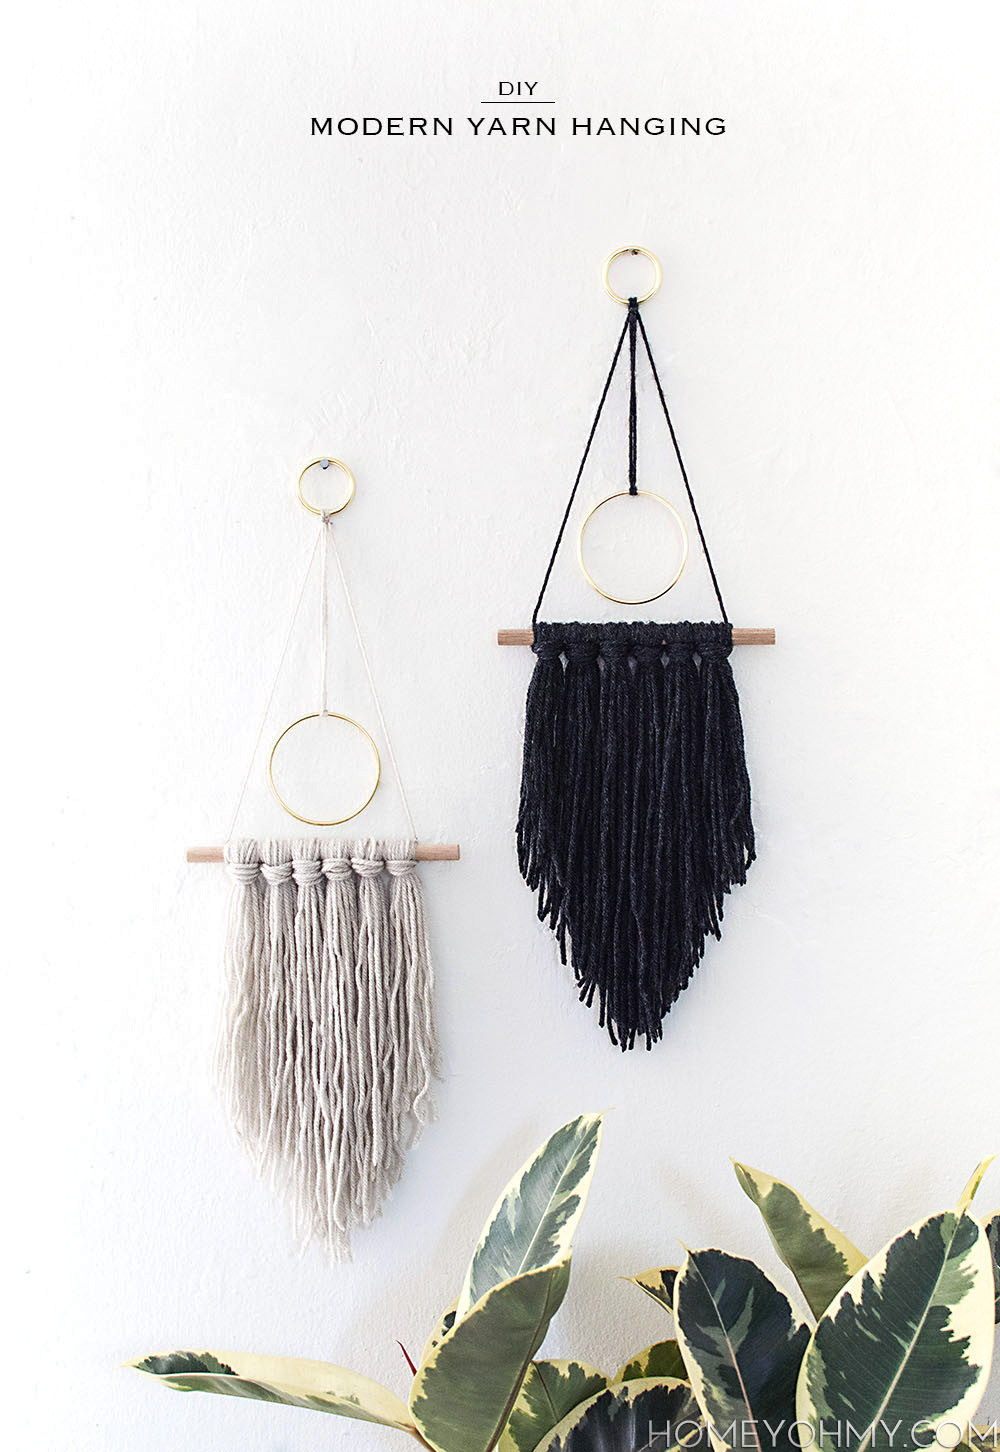 diy modern yarn hanging  homey oh my - diy modern wall hanging